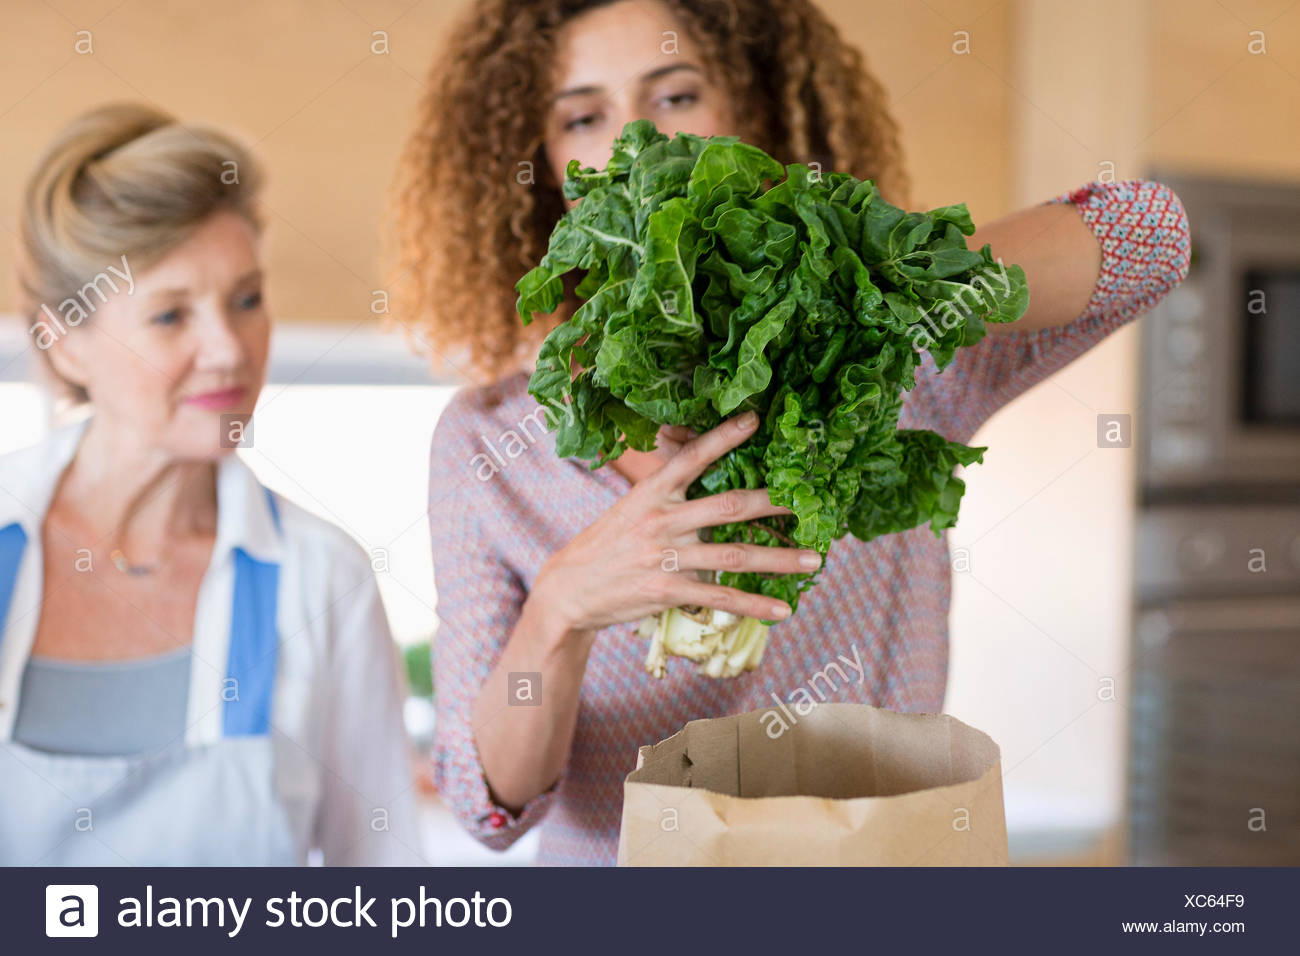 Senior woman with daughter in kitchen Photo Stock